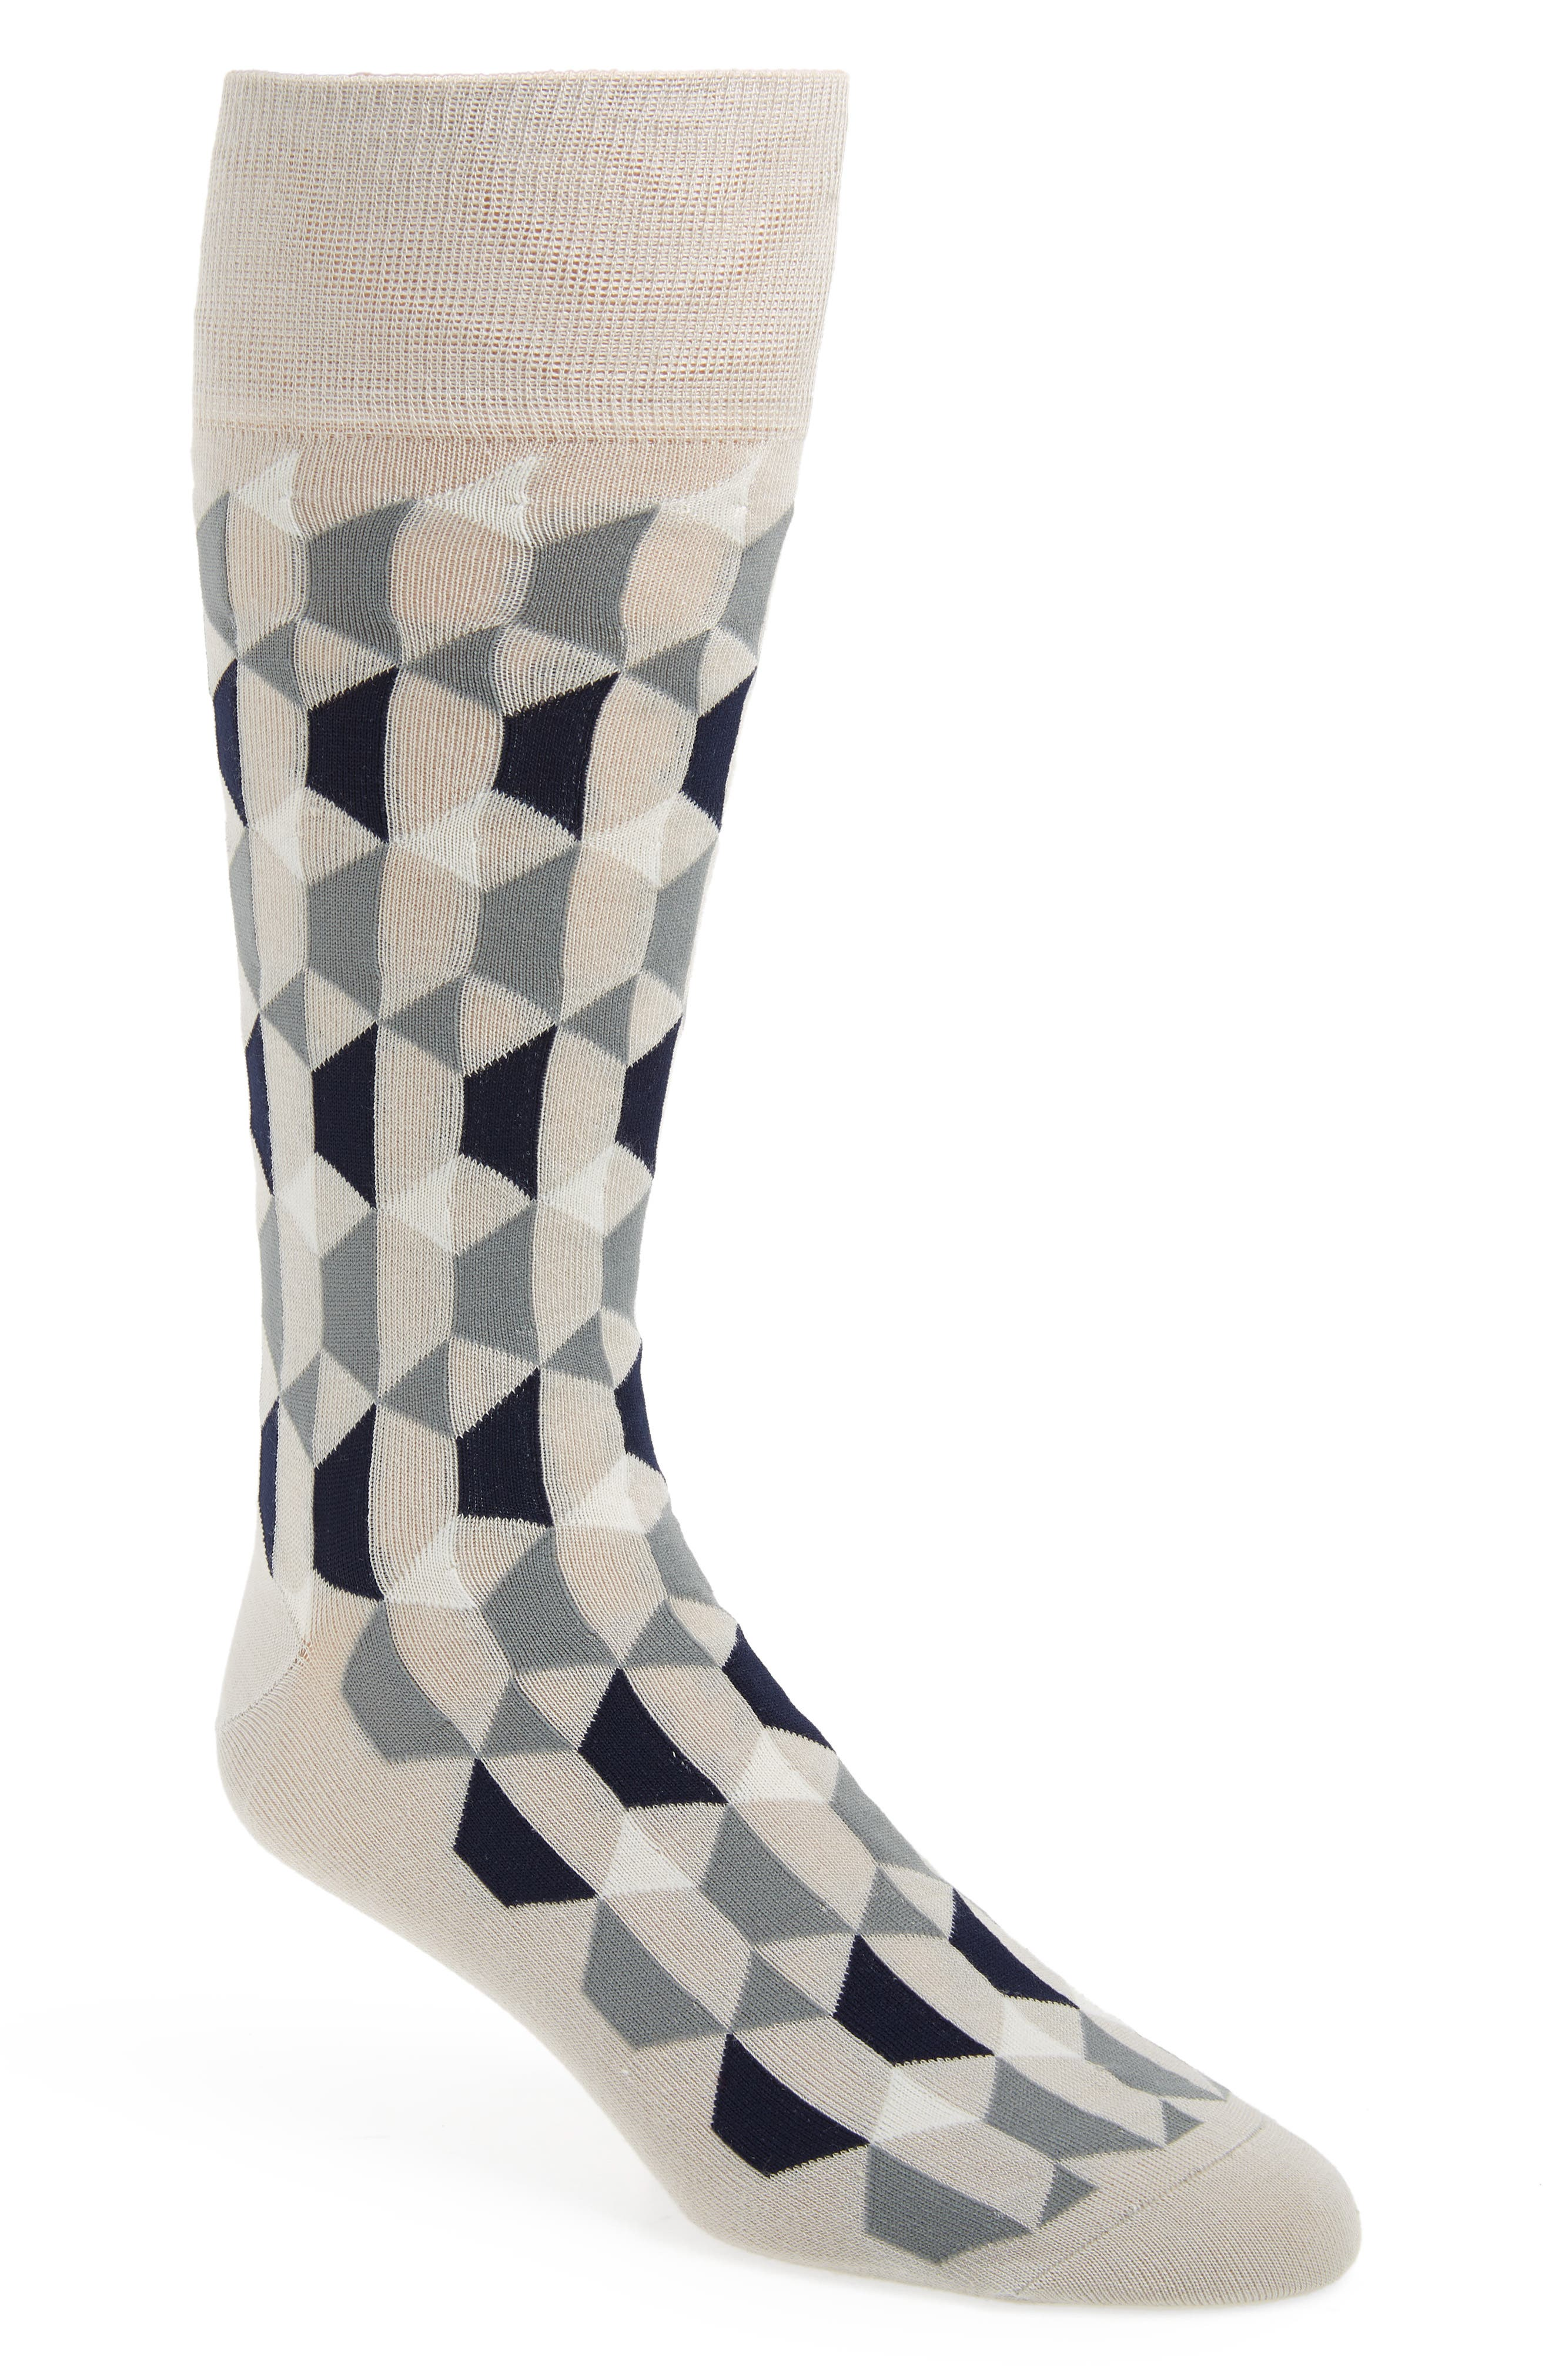 Geometric Socks,                             Main thumbnail 1, color,                             030